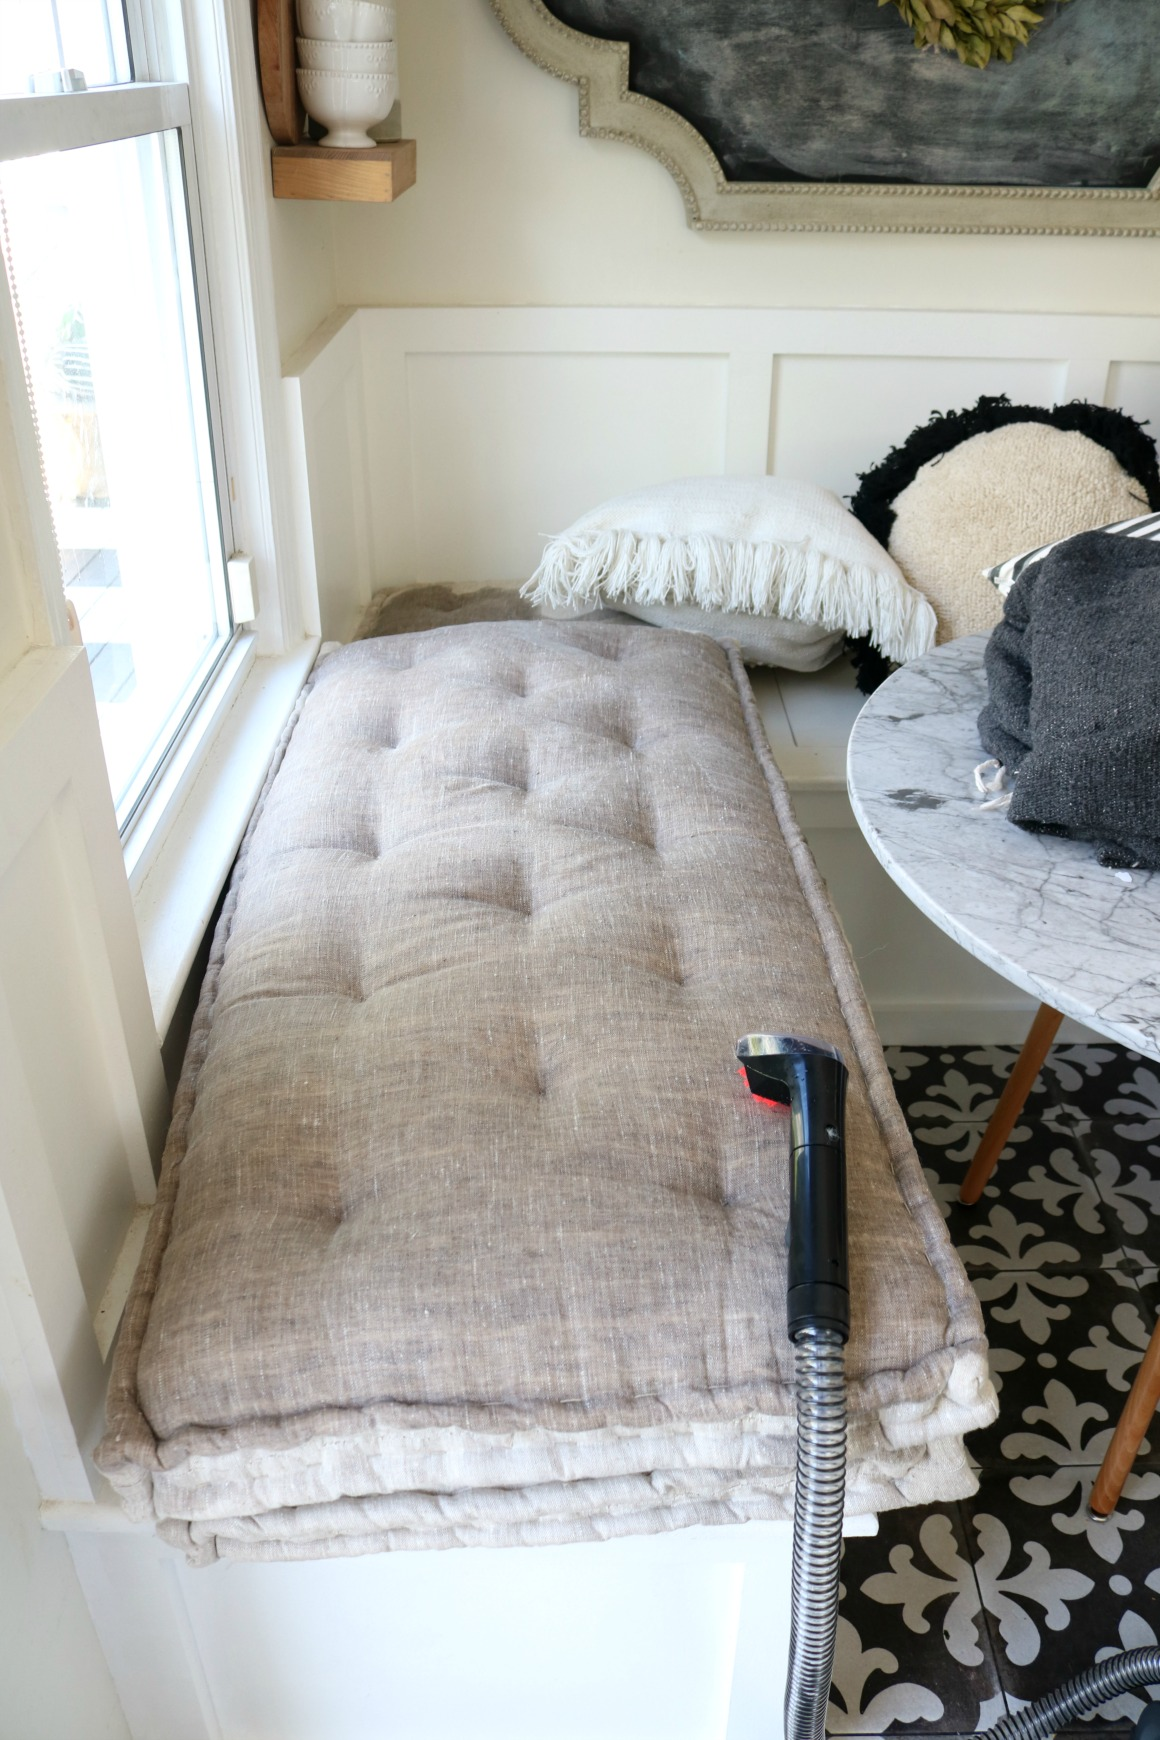 how to clean our room Hello children it is time for us to learn how to clean our room and make it easy to keep it that way this is going to be an easy read as well as a guide to help you clean your room and keep it that way.